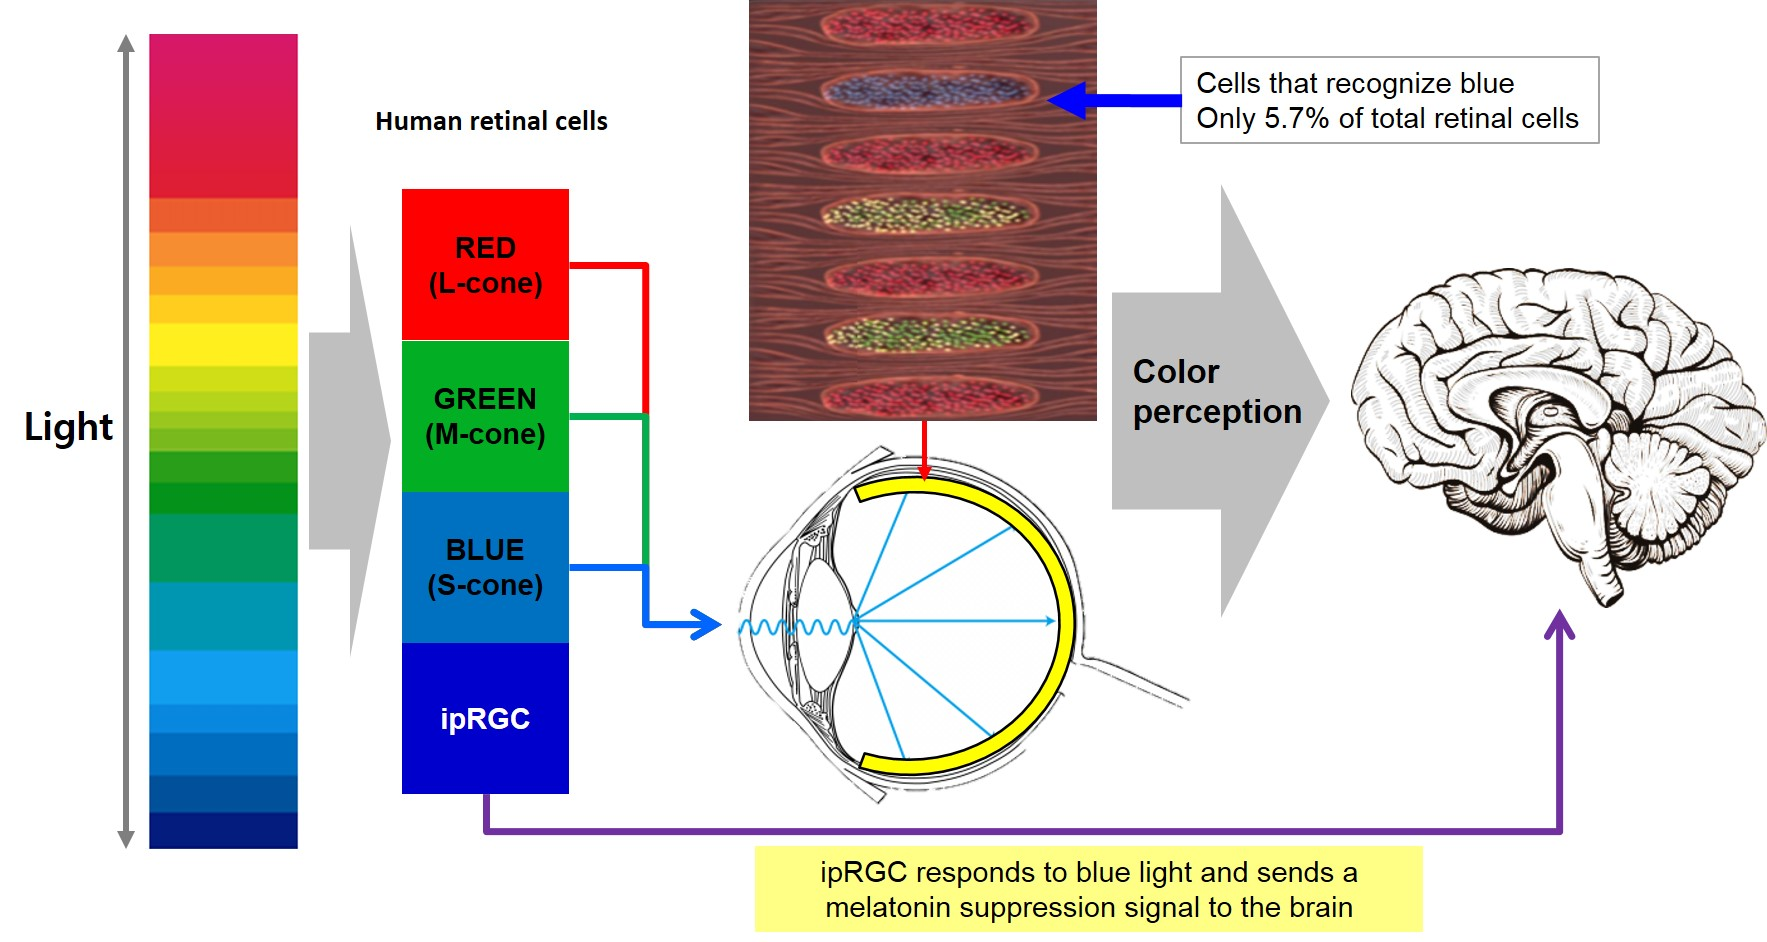 LEDs enable human-centric lighting optimized for circadian rhythms